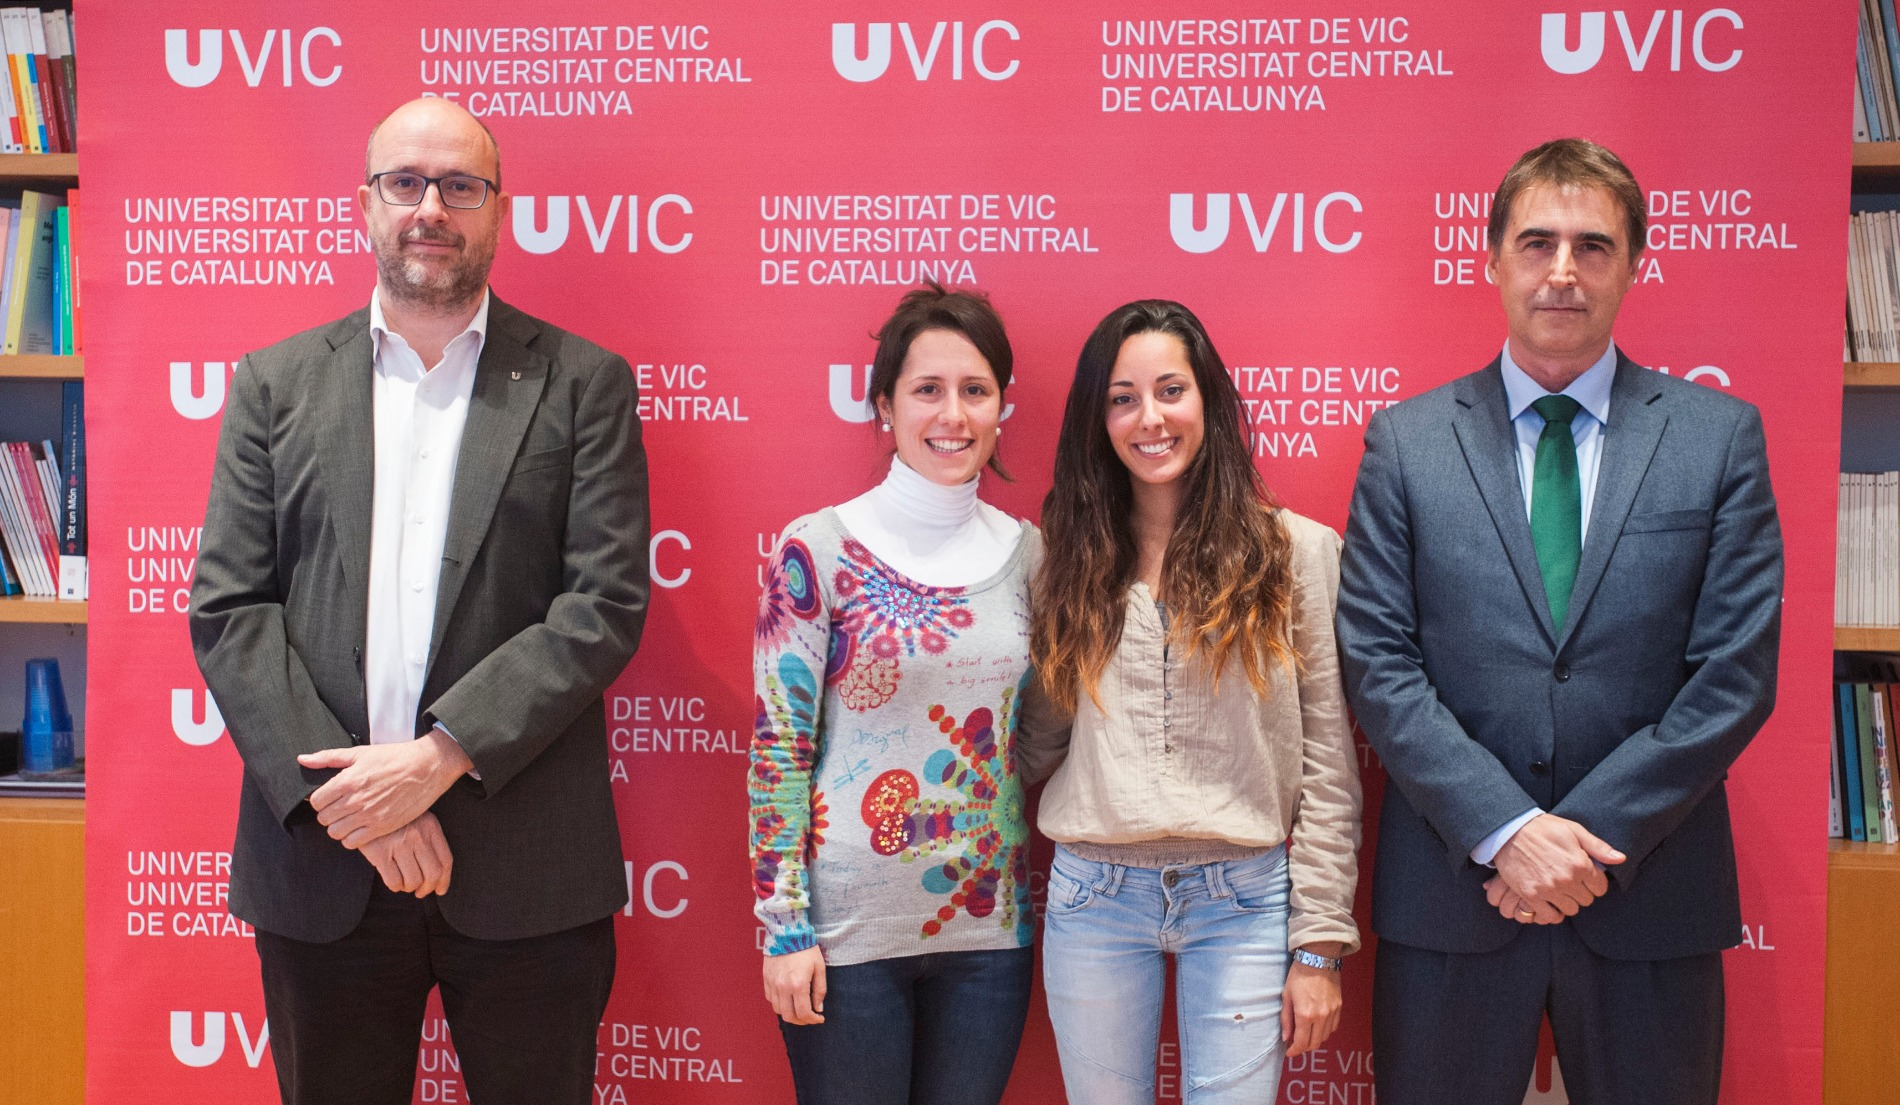 Ricard Parra/UVIC